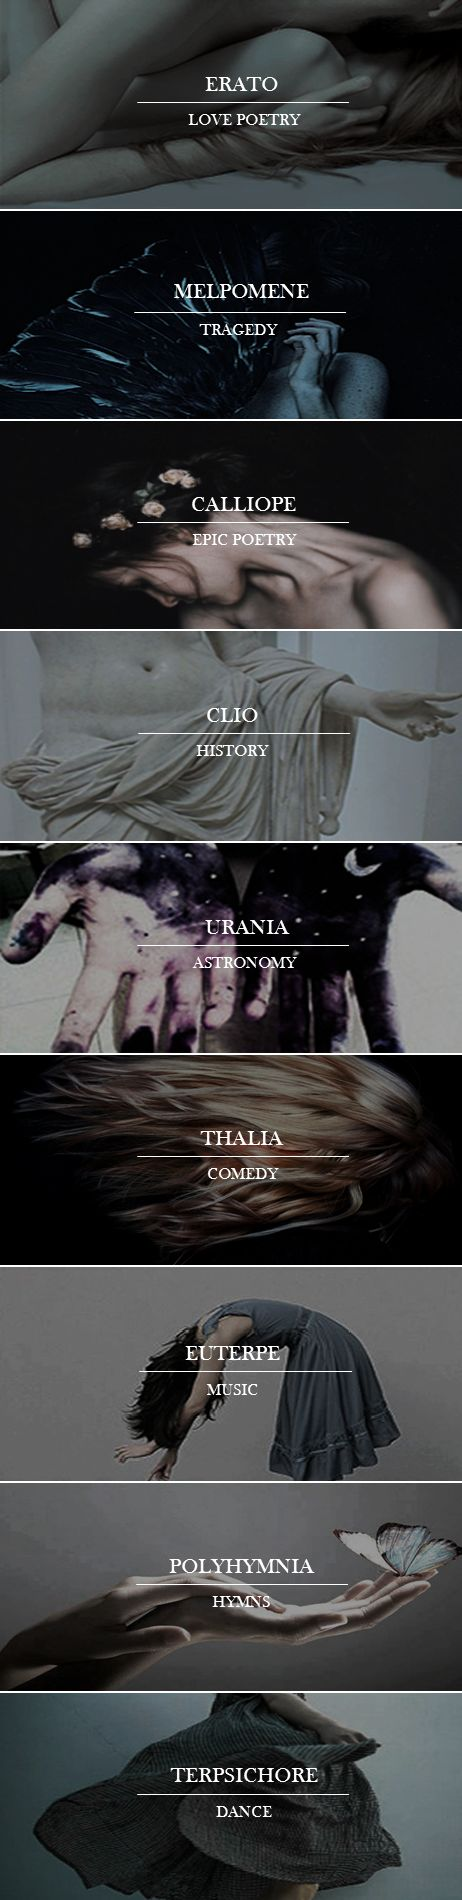 Mythology Aesthetics → The Nine Muses The Muses are the inspirational goddesses of literature, science, and the arts in Greek mythology. According to Hesiod's Theogony, they were daughters of Zeus, the second generation king of the gods, and the offspring of Mnemosyne, goddess of memory.